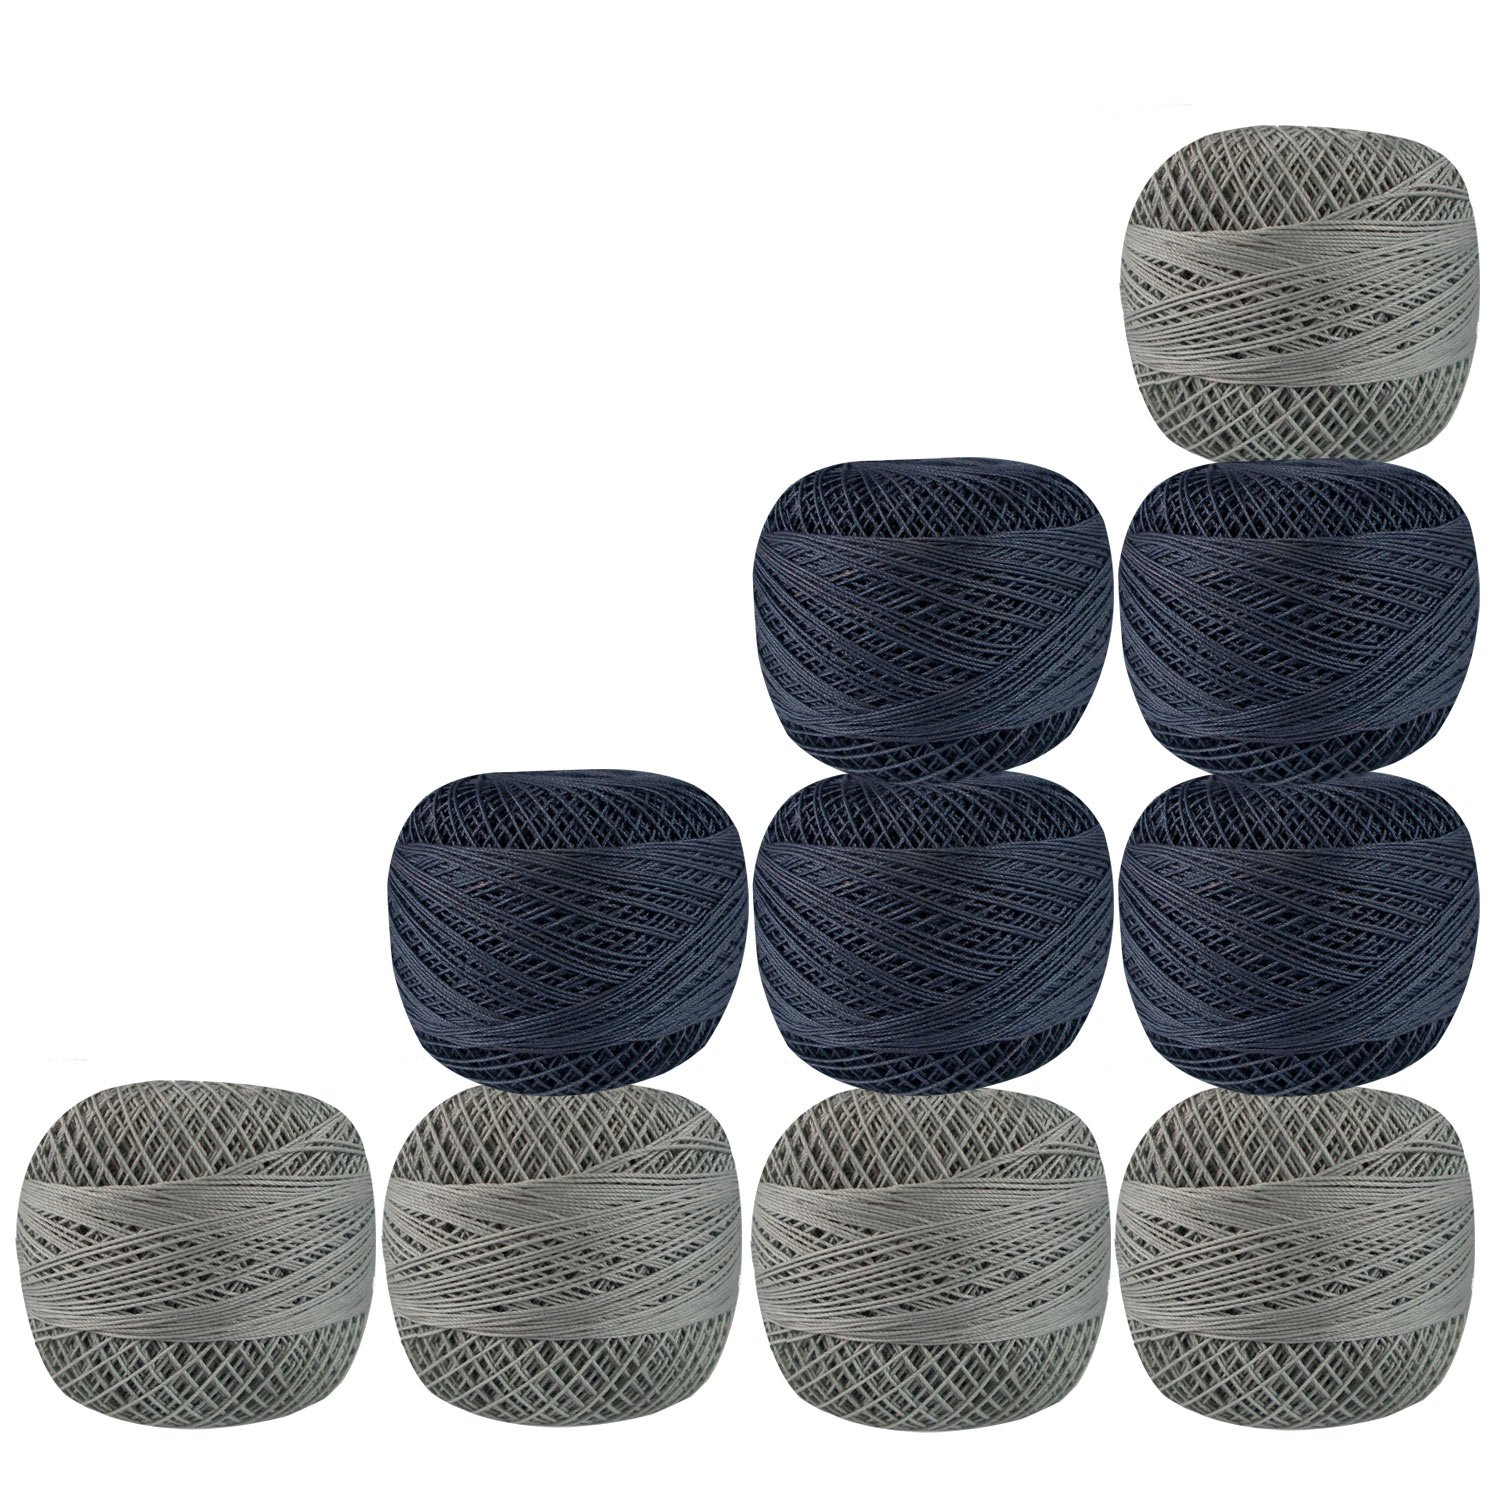 Lot of 10 Pcs Gray Color Cotton Crochet Thread Cross Stitch Knitting Yarn Tatting Doilies Skeins Lacey Craft